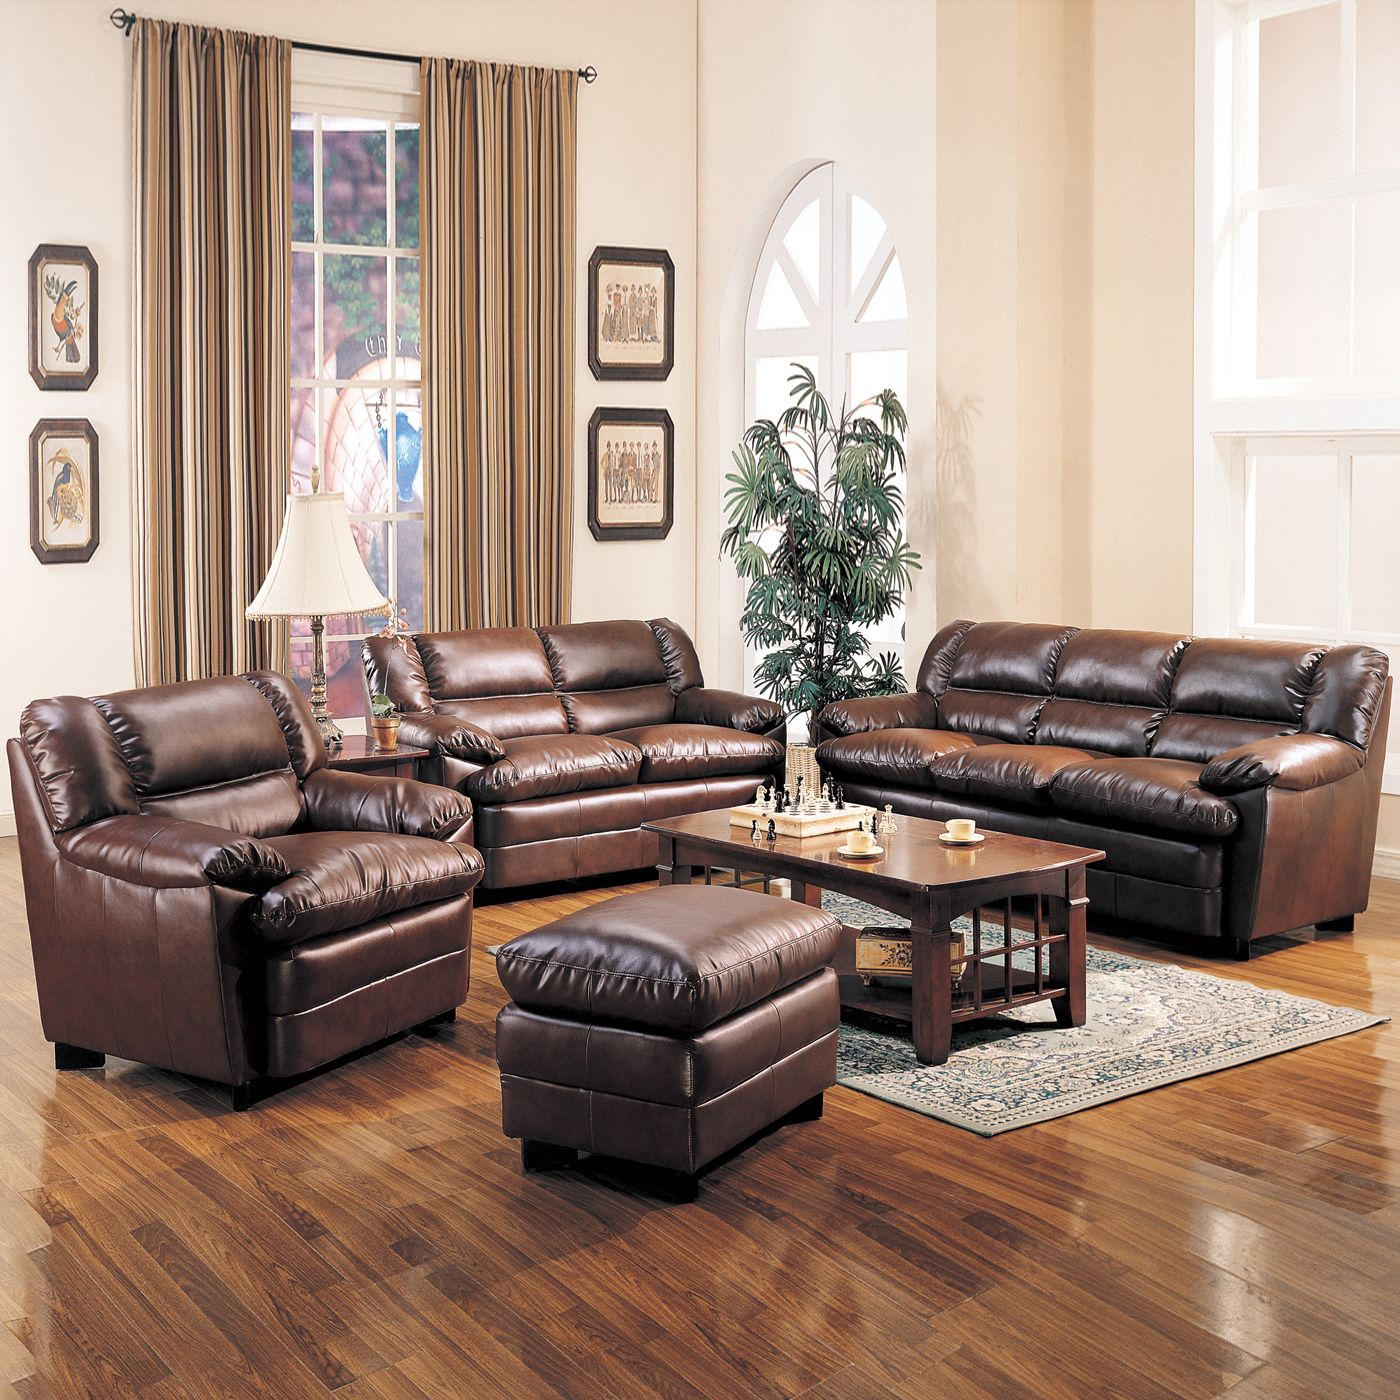 Black Wood Living Room Furniture Cream Living Room Sets Vintage Living Room Set Up With